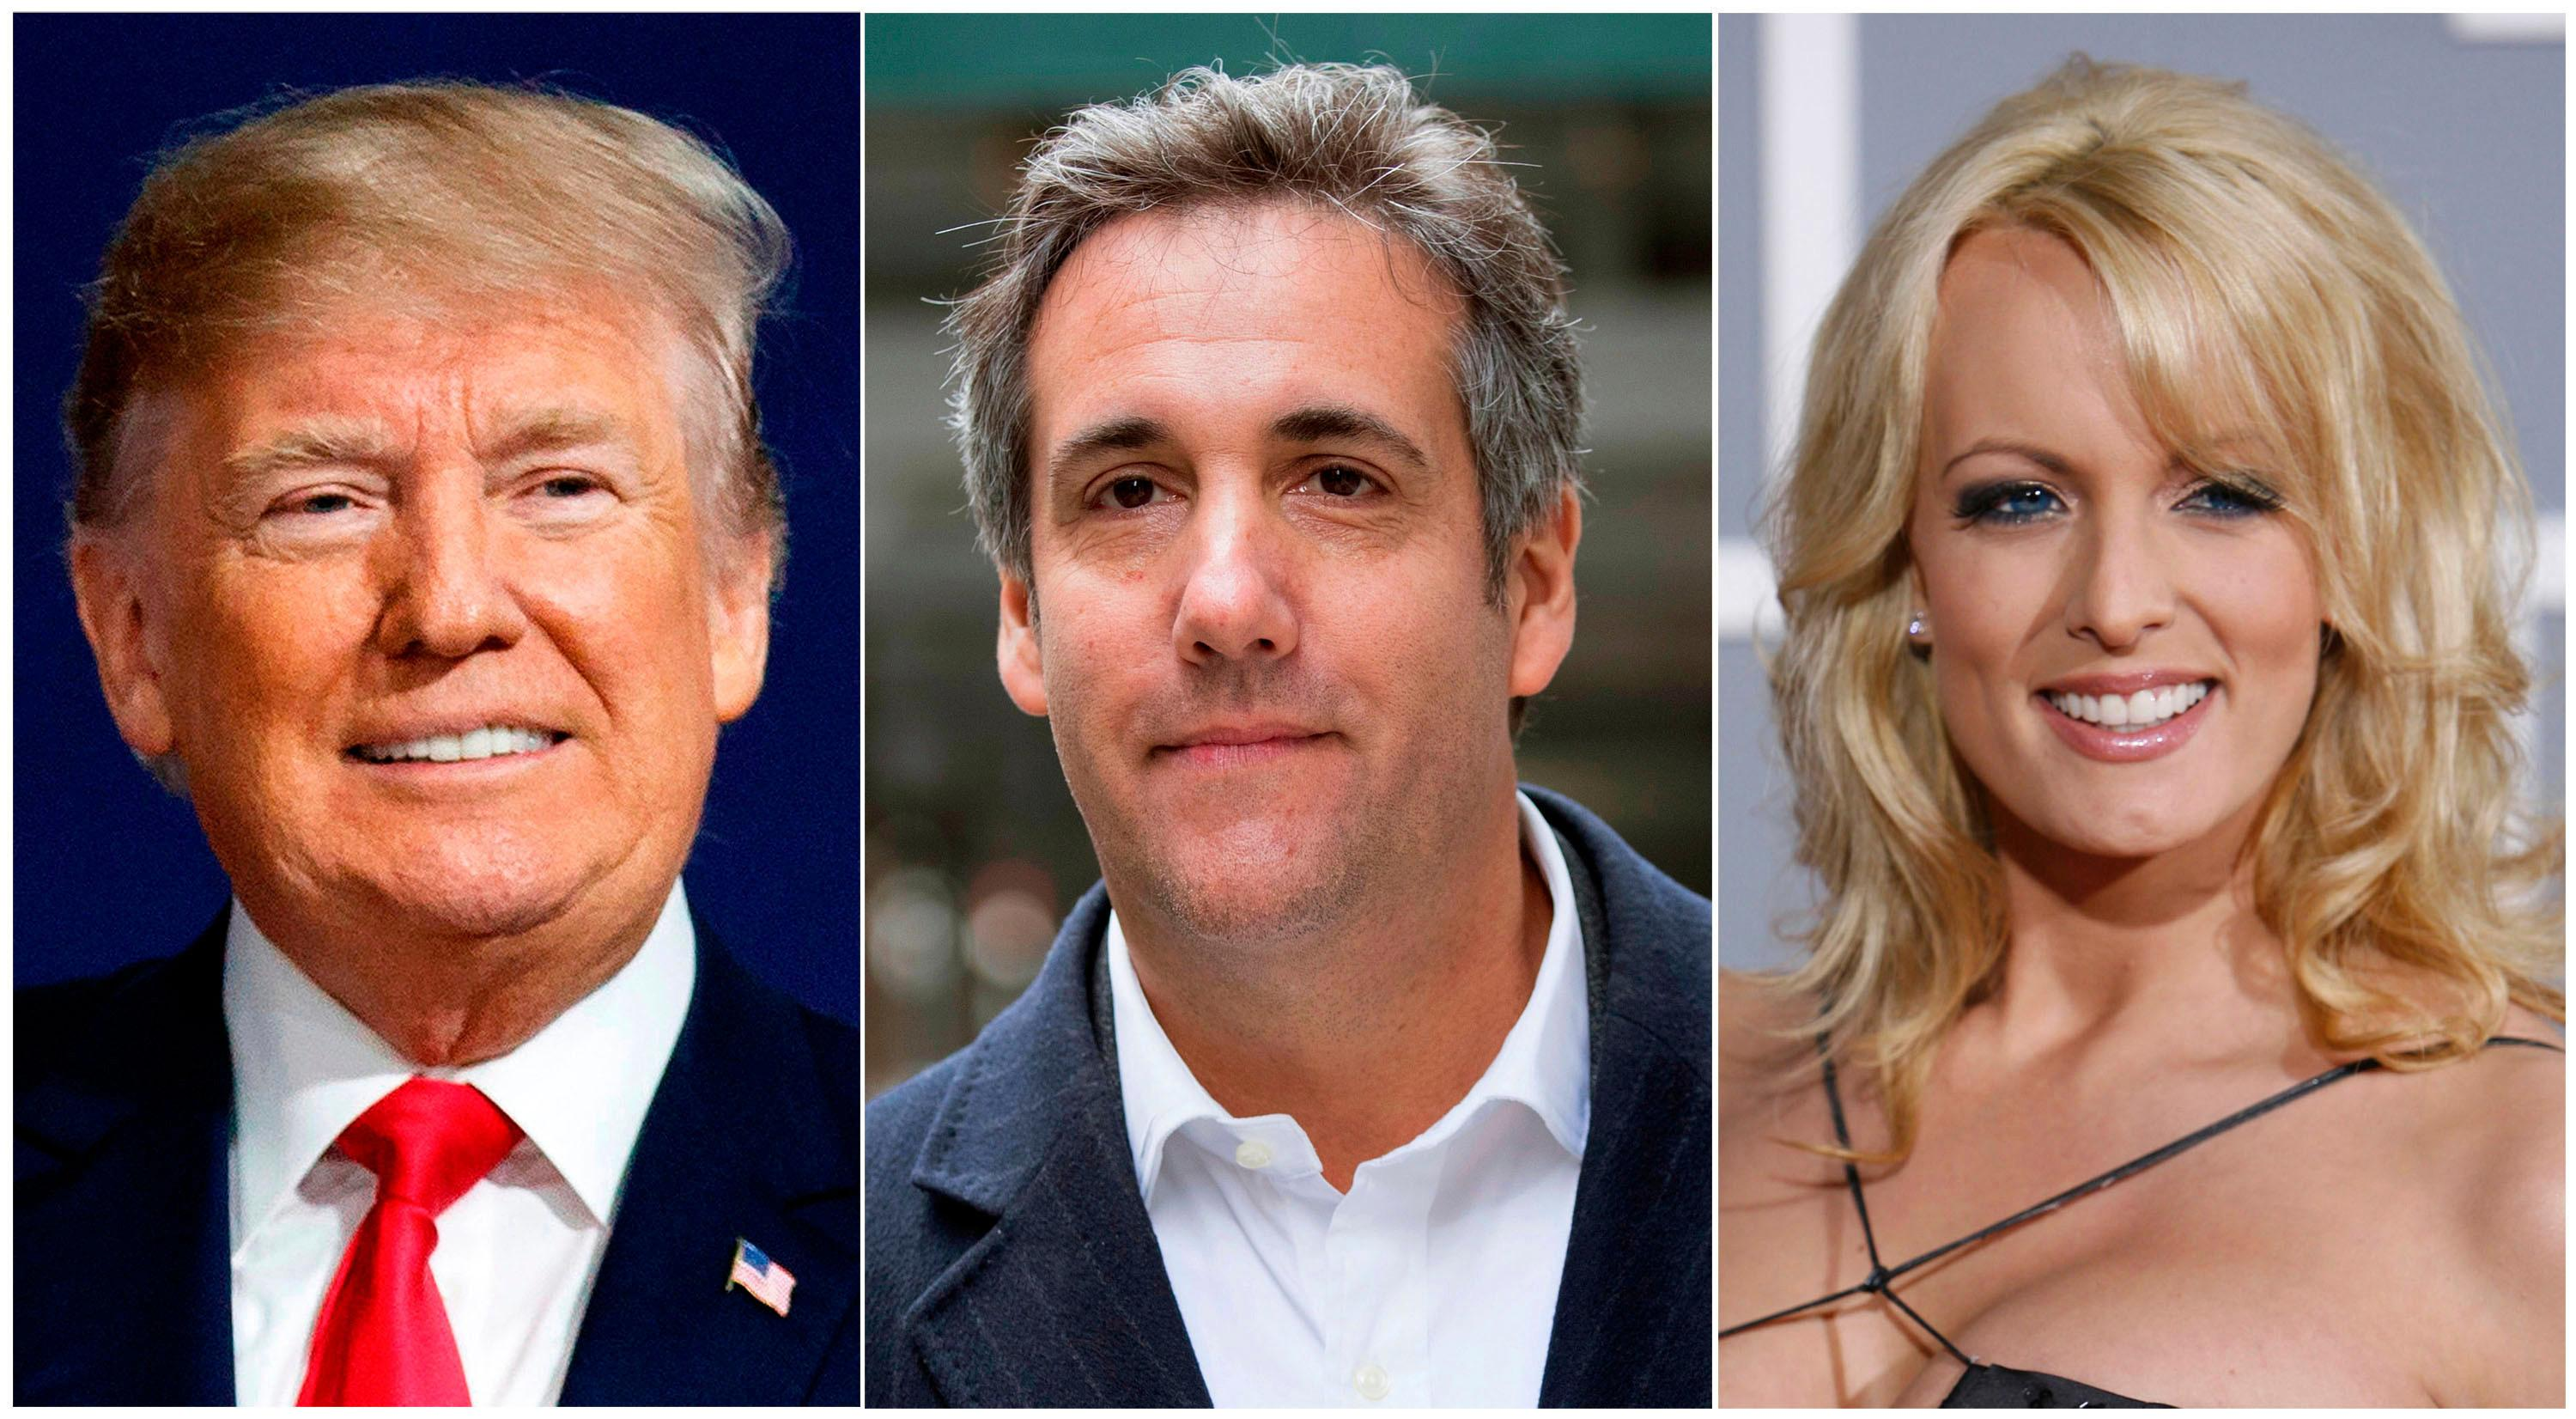 This combination photo shows, from left, President Donald Trump, attorney Michael Cohen and adult film actress Stormy Daniels. (AP Photo)